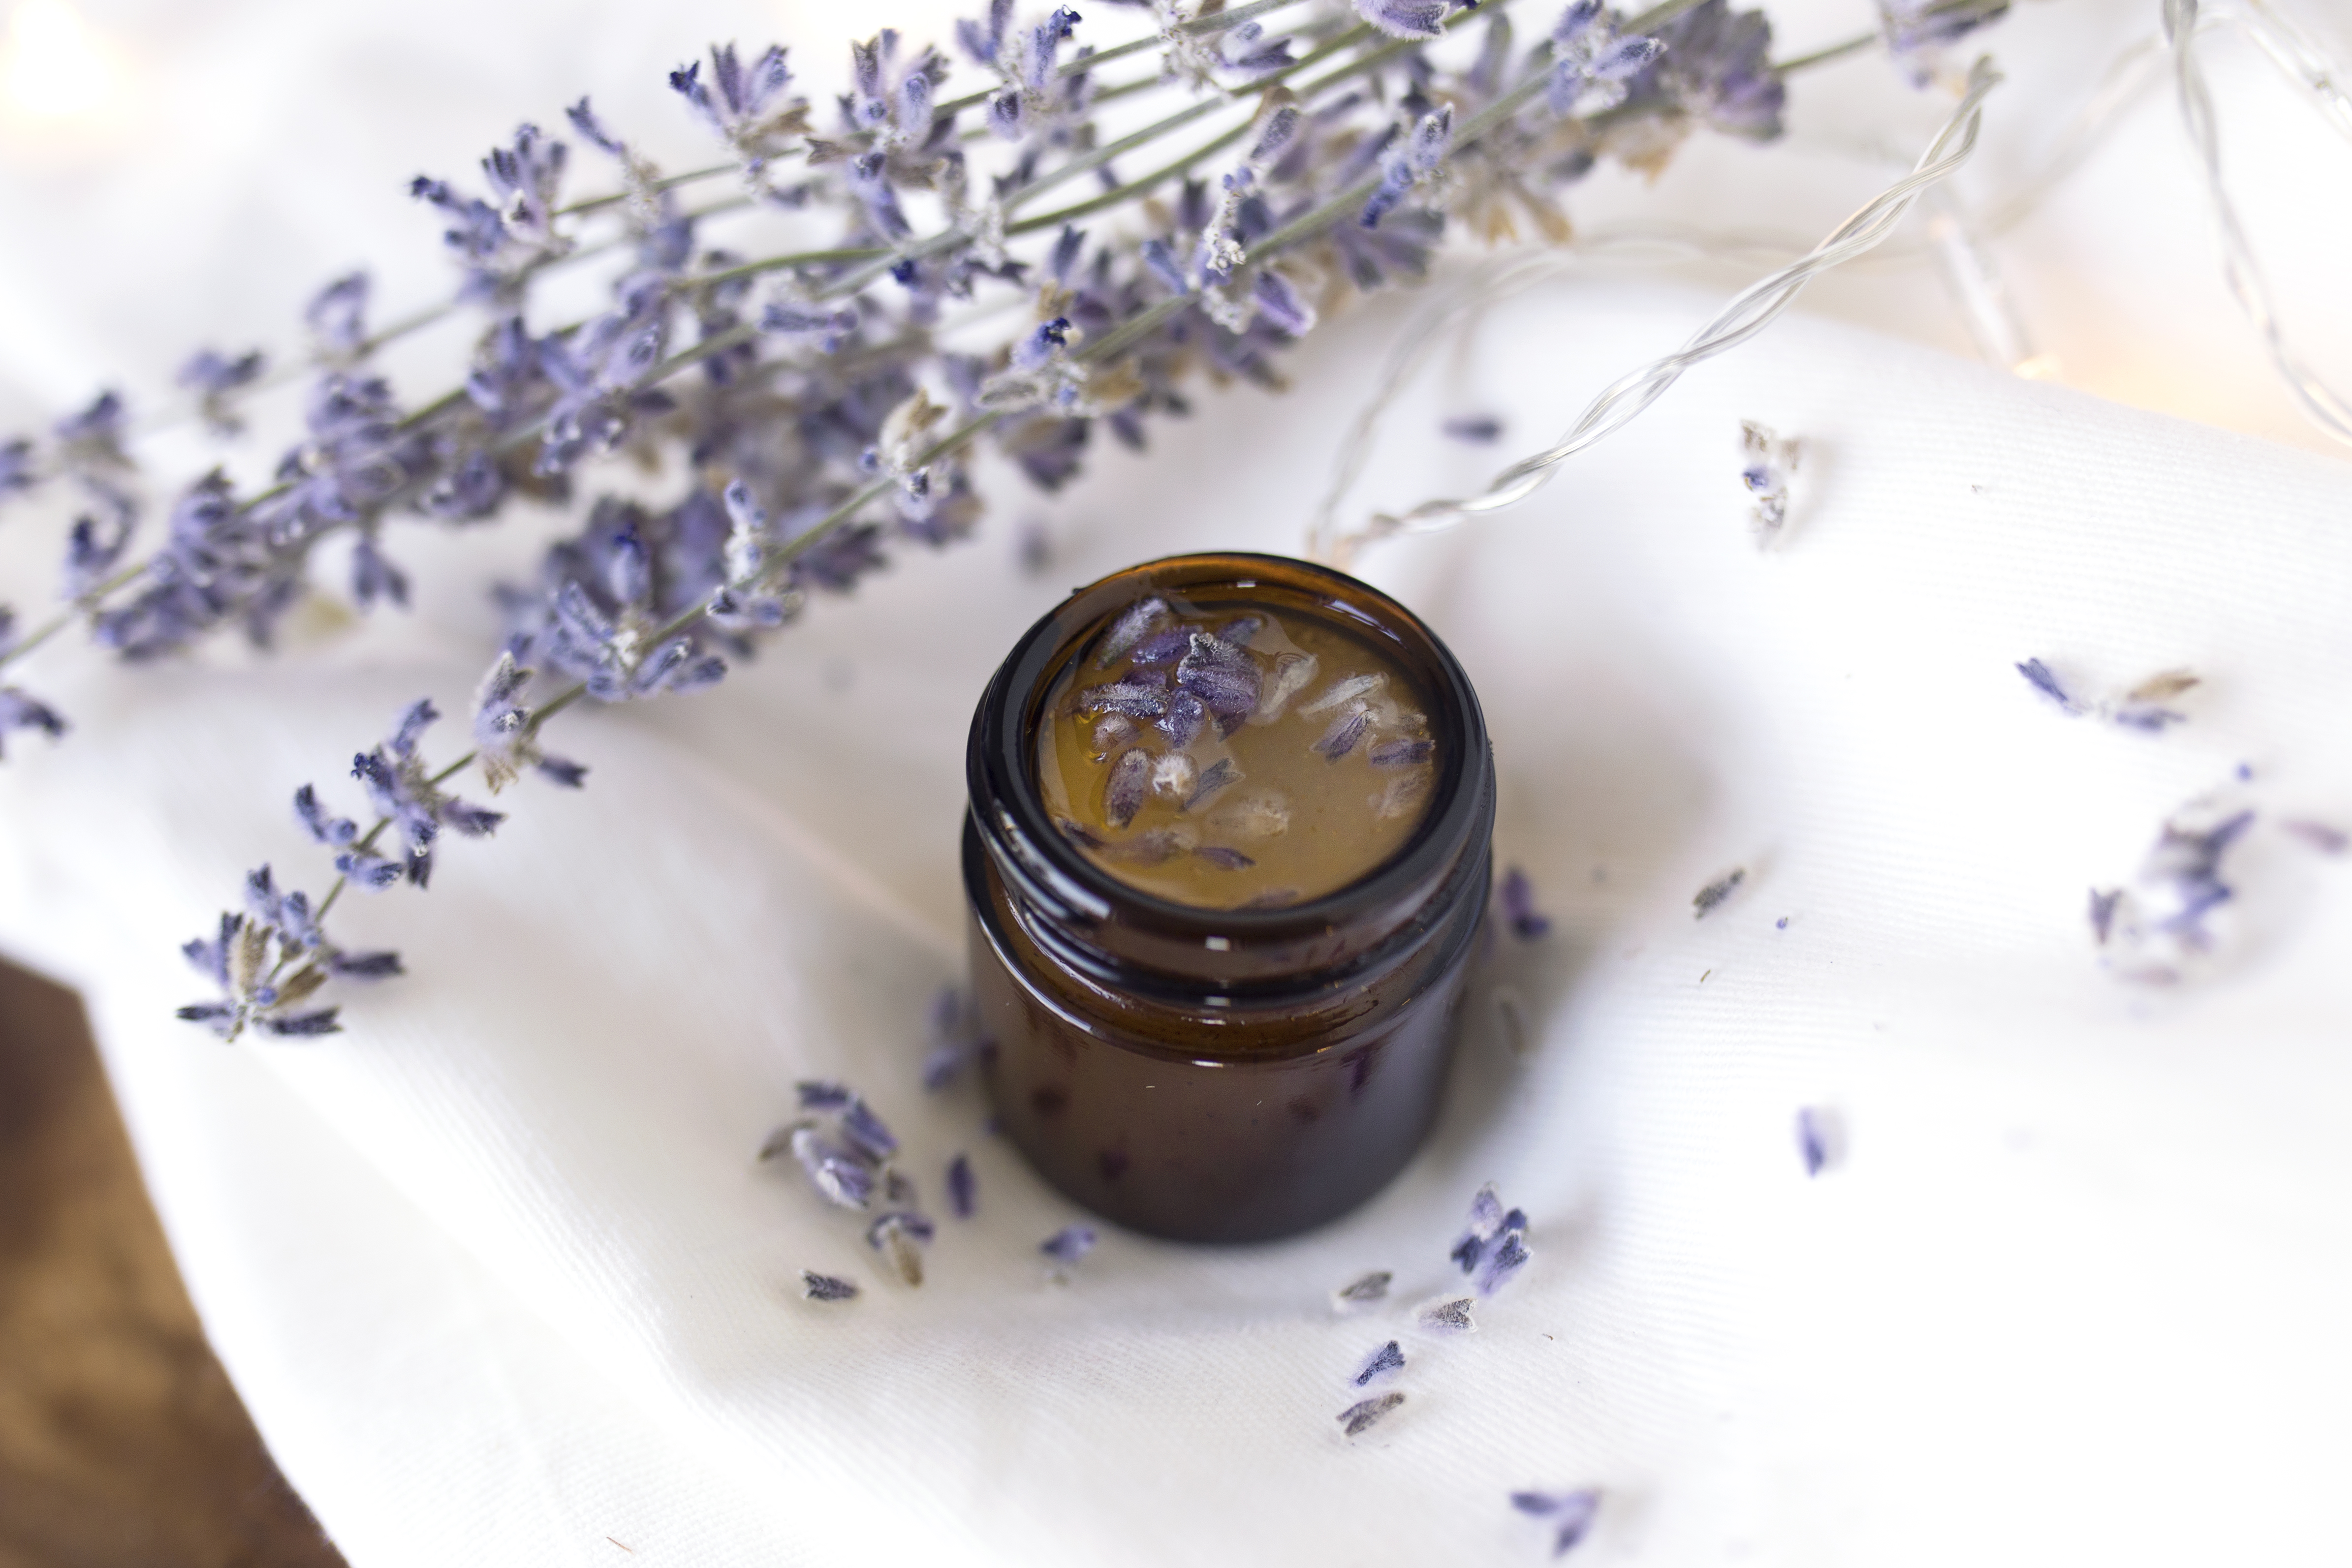 Resuscitate Parched Lips with this Soothing Lavender Sugar Scrub